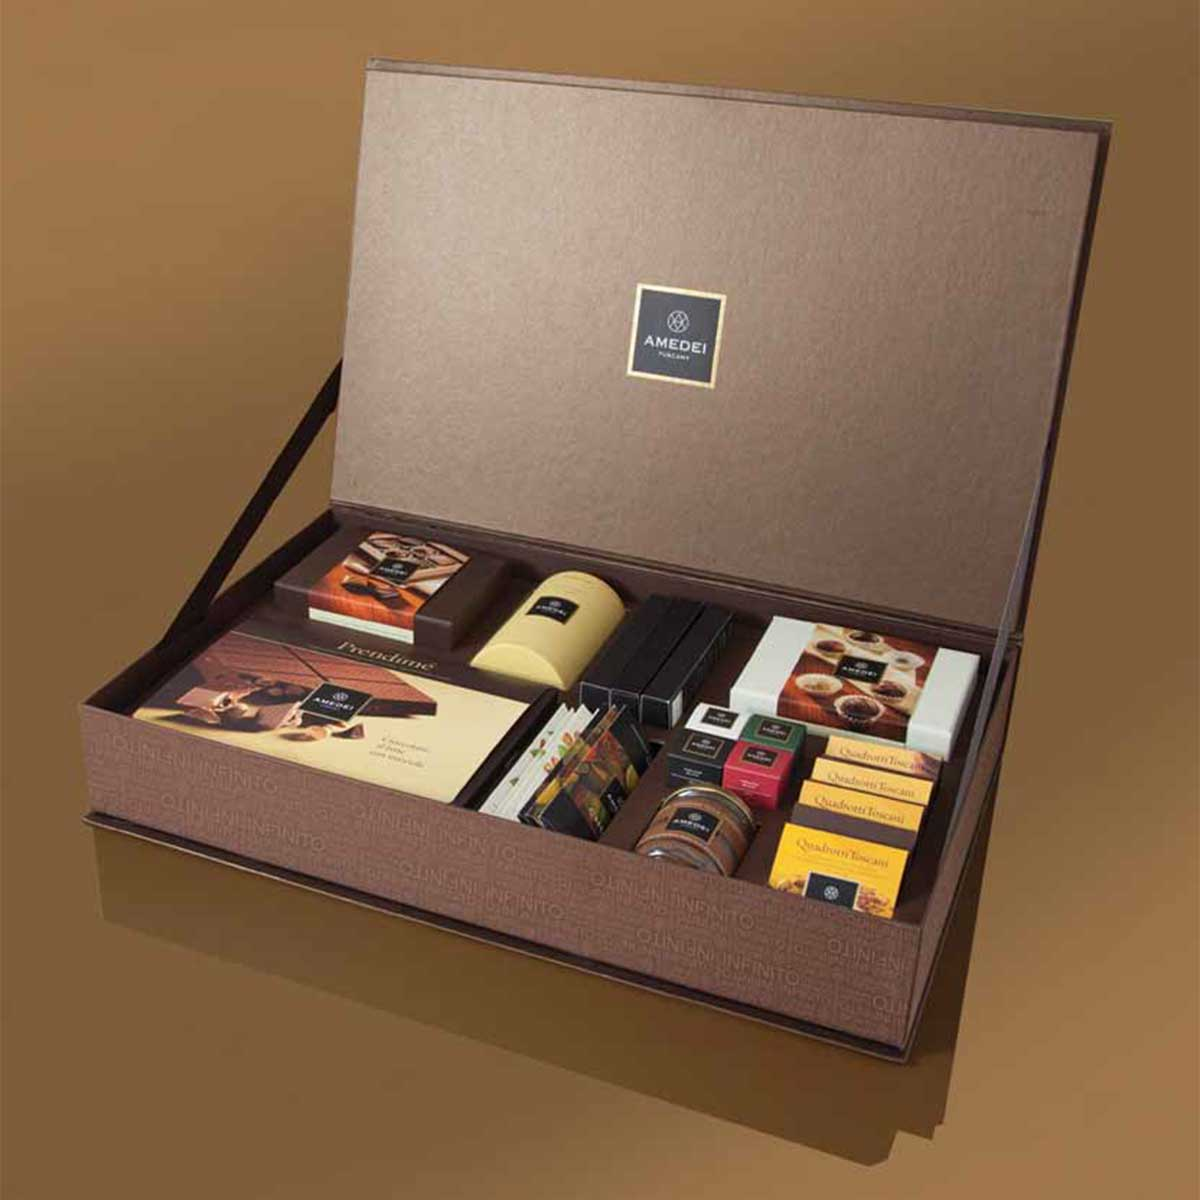 Amedei Luxury Chocolate Gift Box Infinito